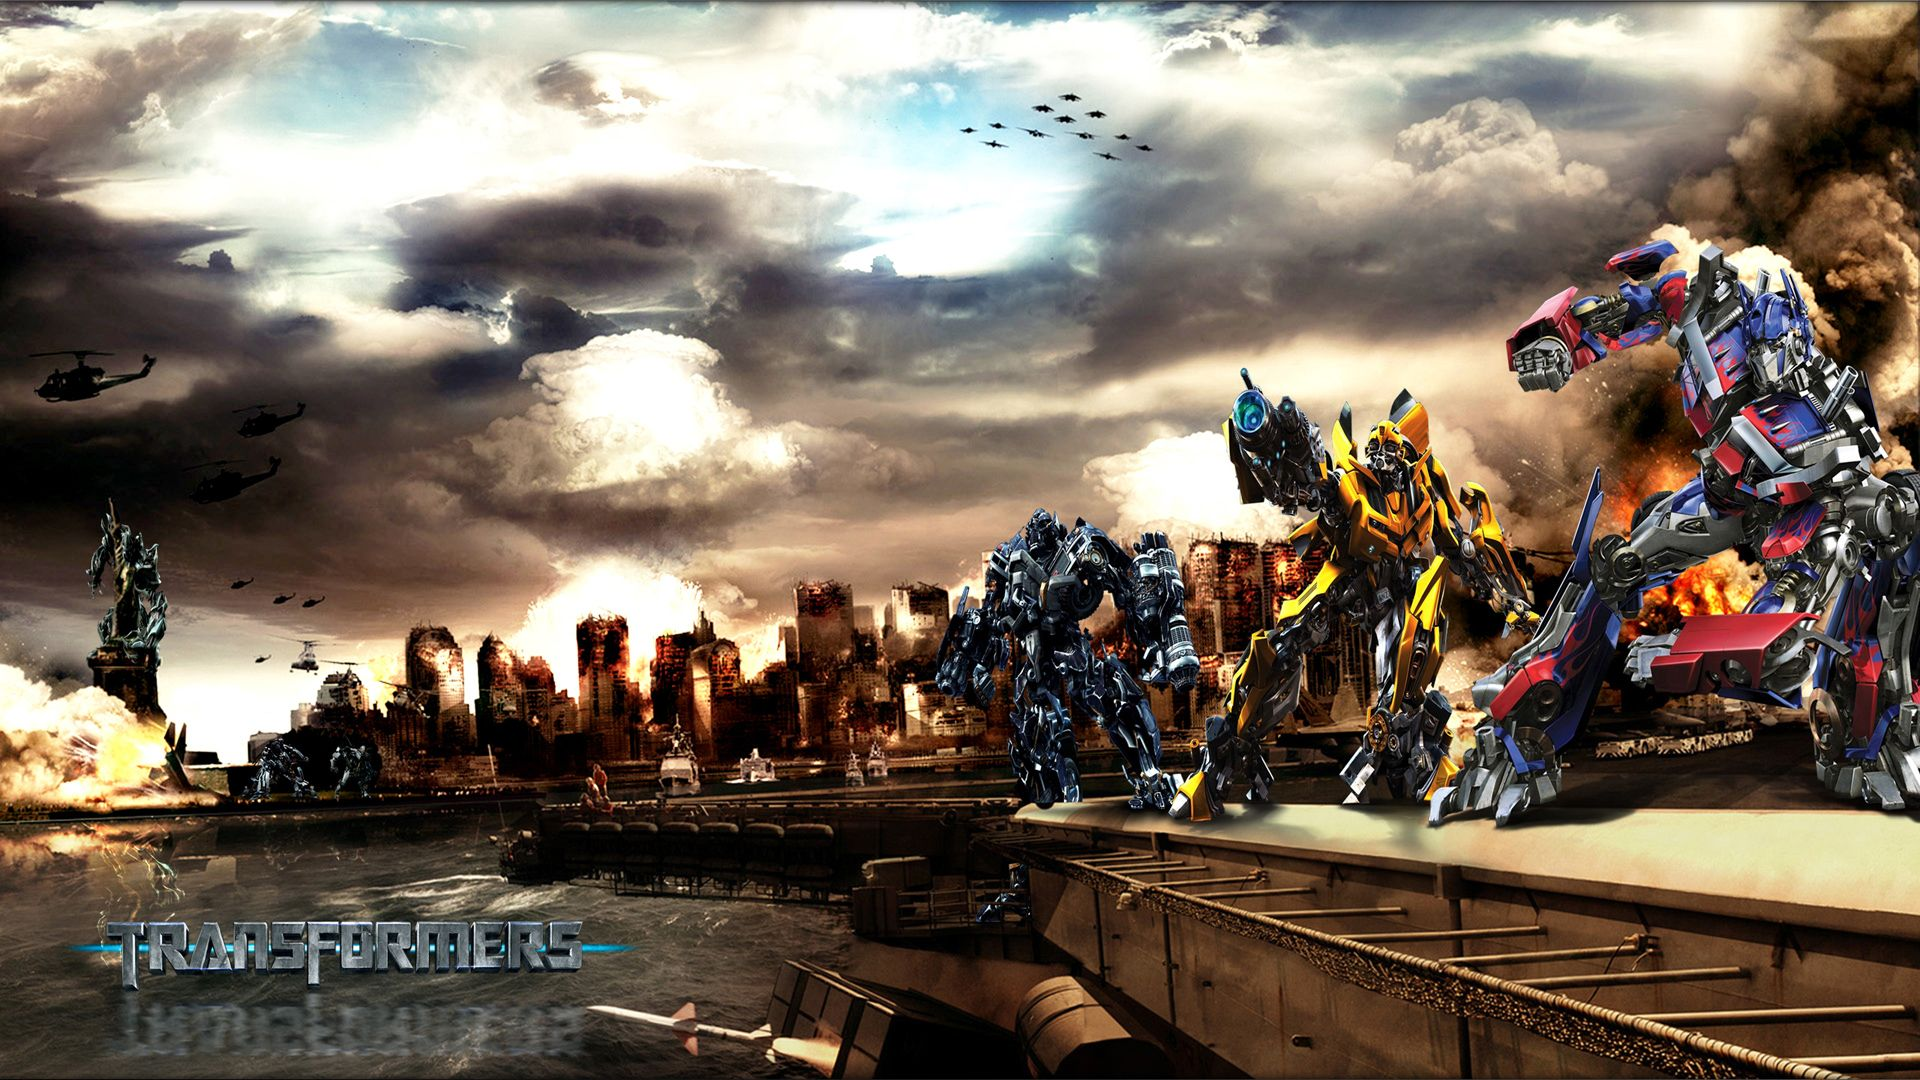 Transformers 4 Movie Pictures HD Wallpaper of Movie   hdwallpaper2013 1920x1080